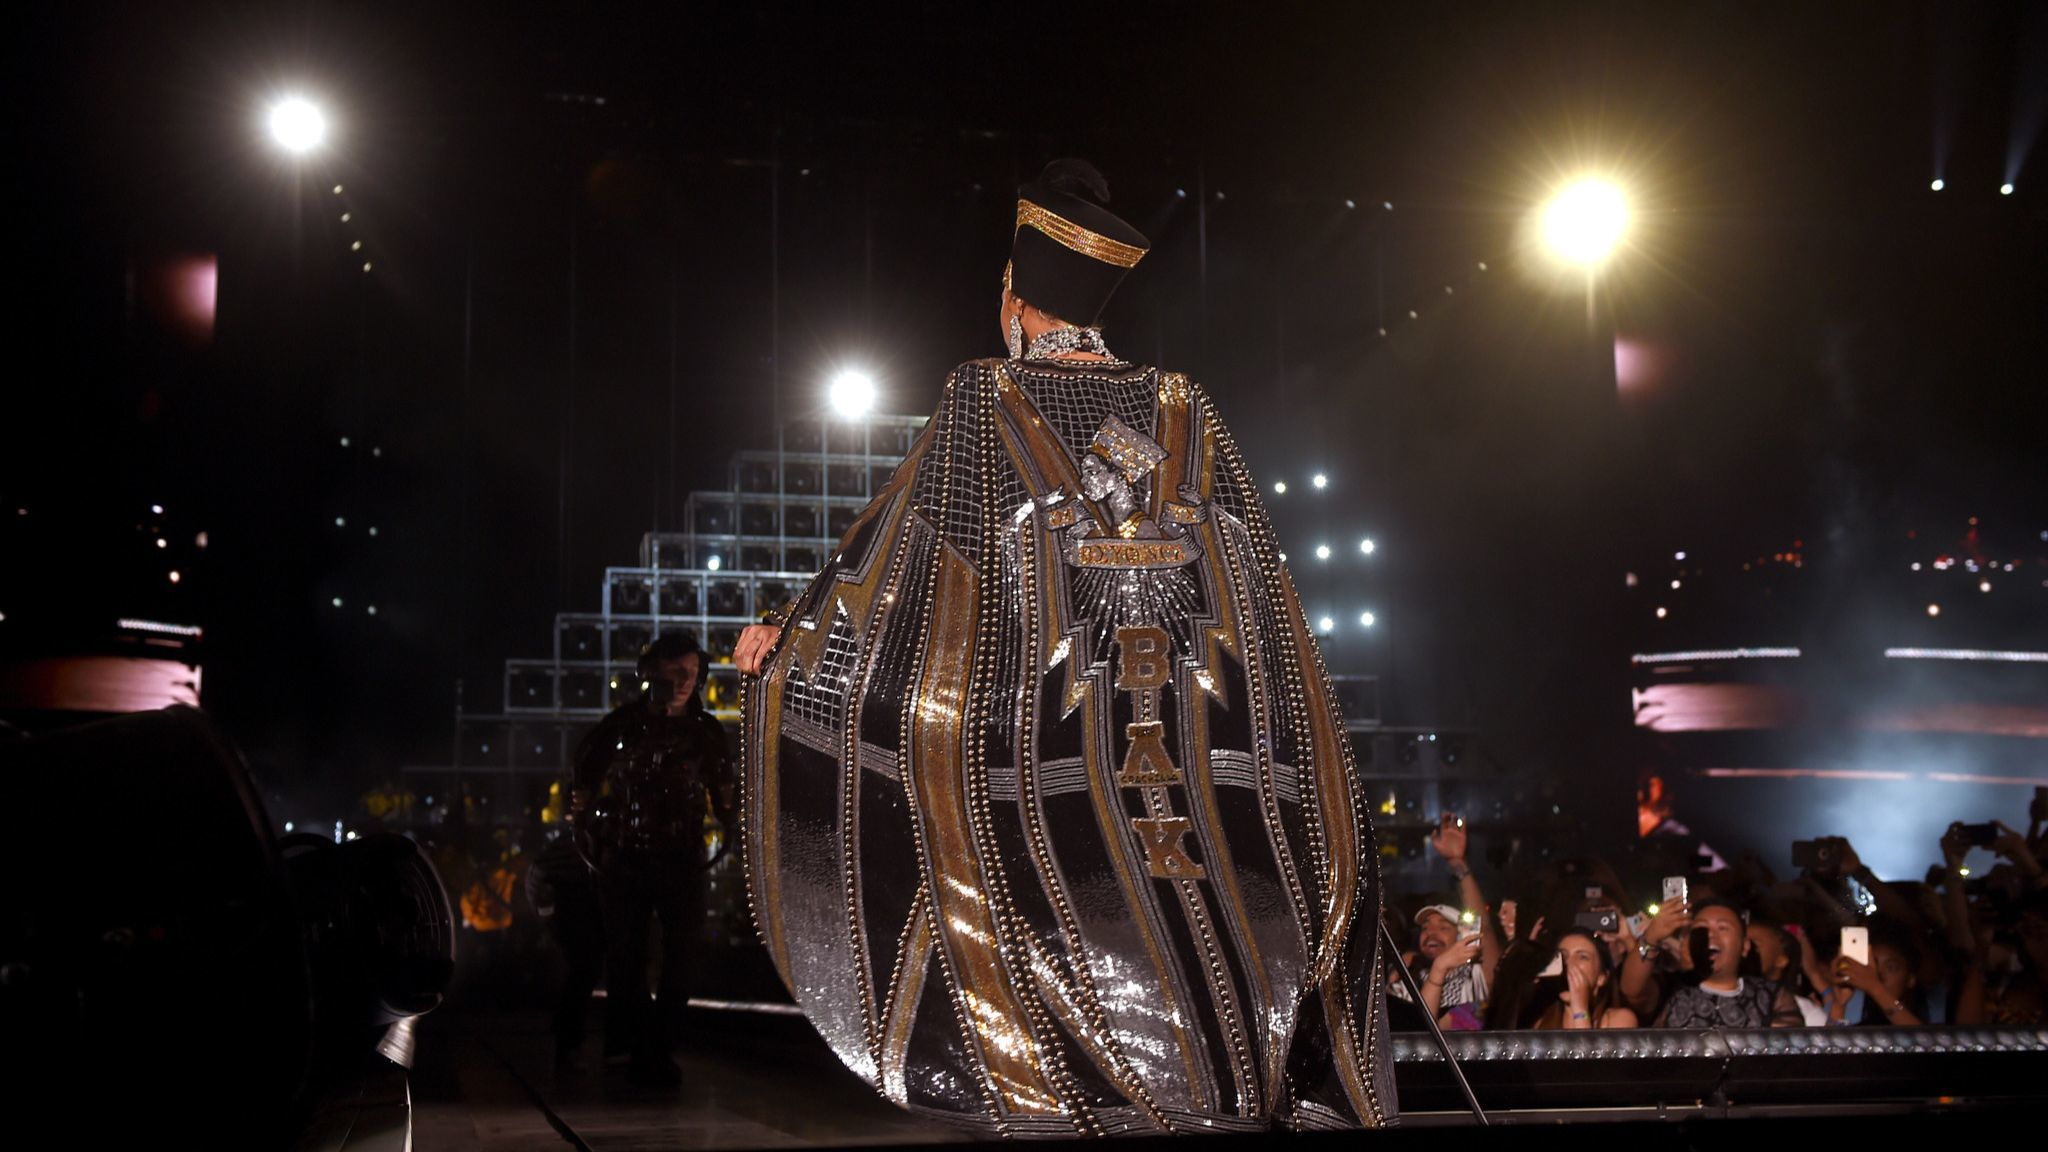 This is how Beyonce took everyone's breath away with her Coachella performance